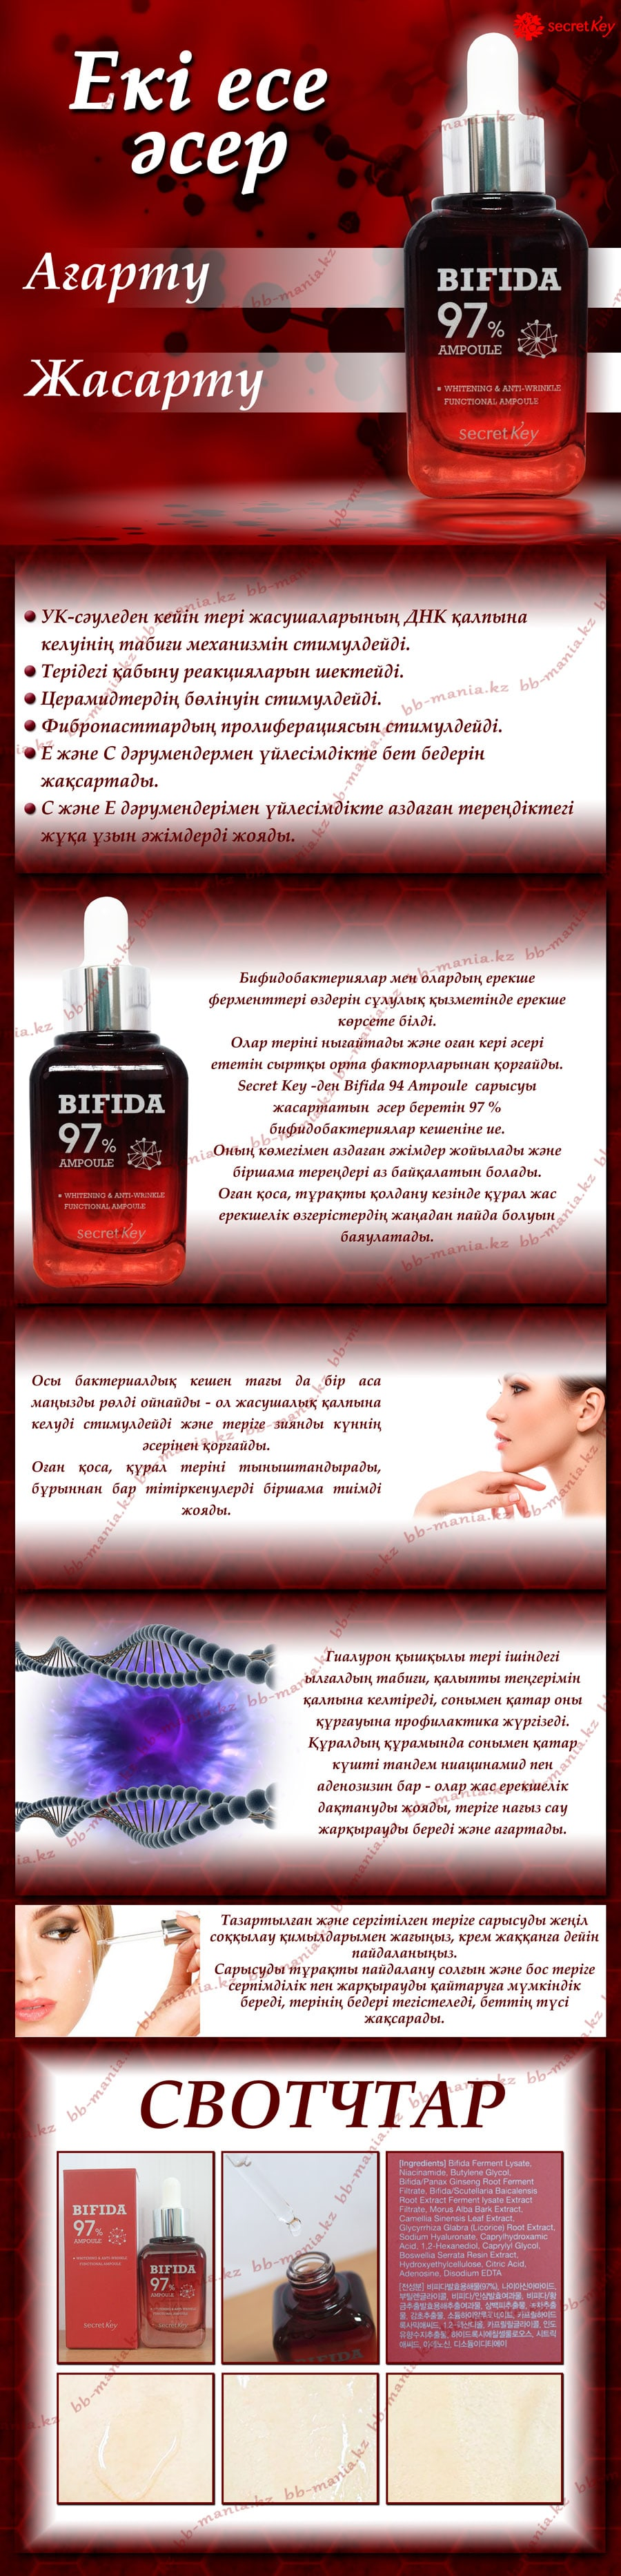 Bifida-97-Ampoule-[Secret-Key]-кз-min